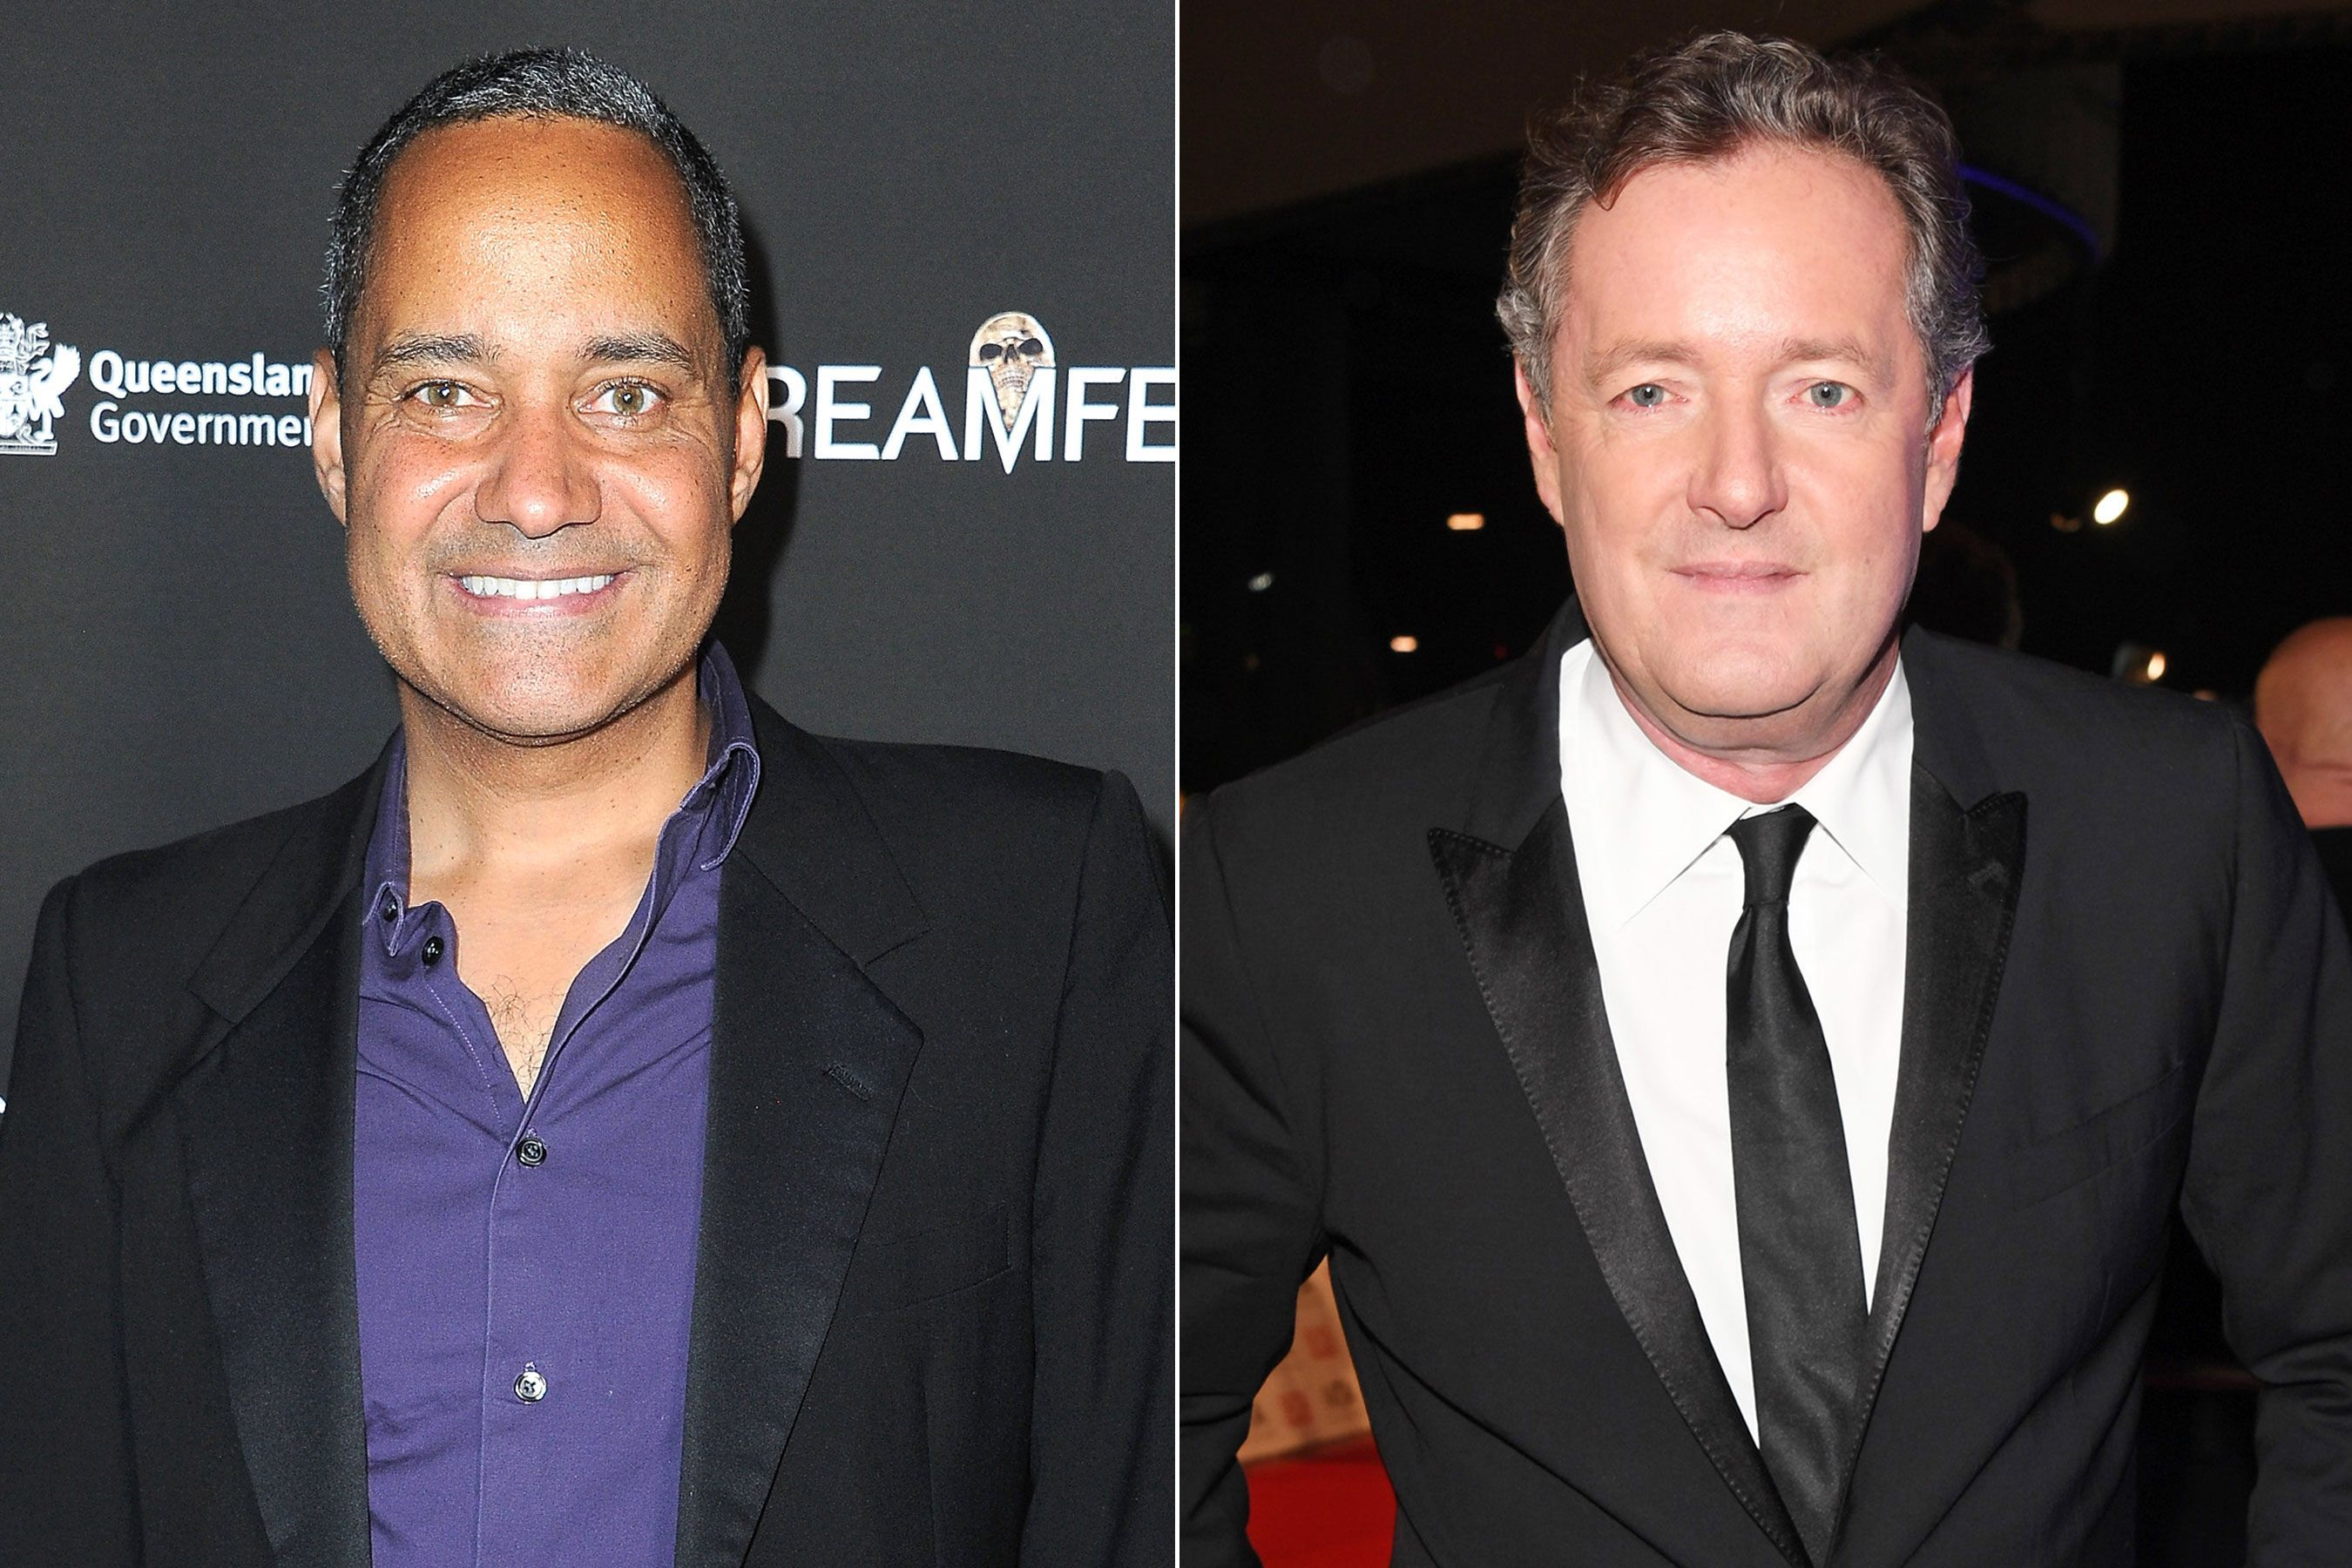 Piers Morgan gets schooled on horror movies in new Twitter feud